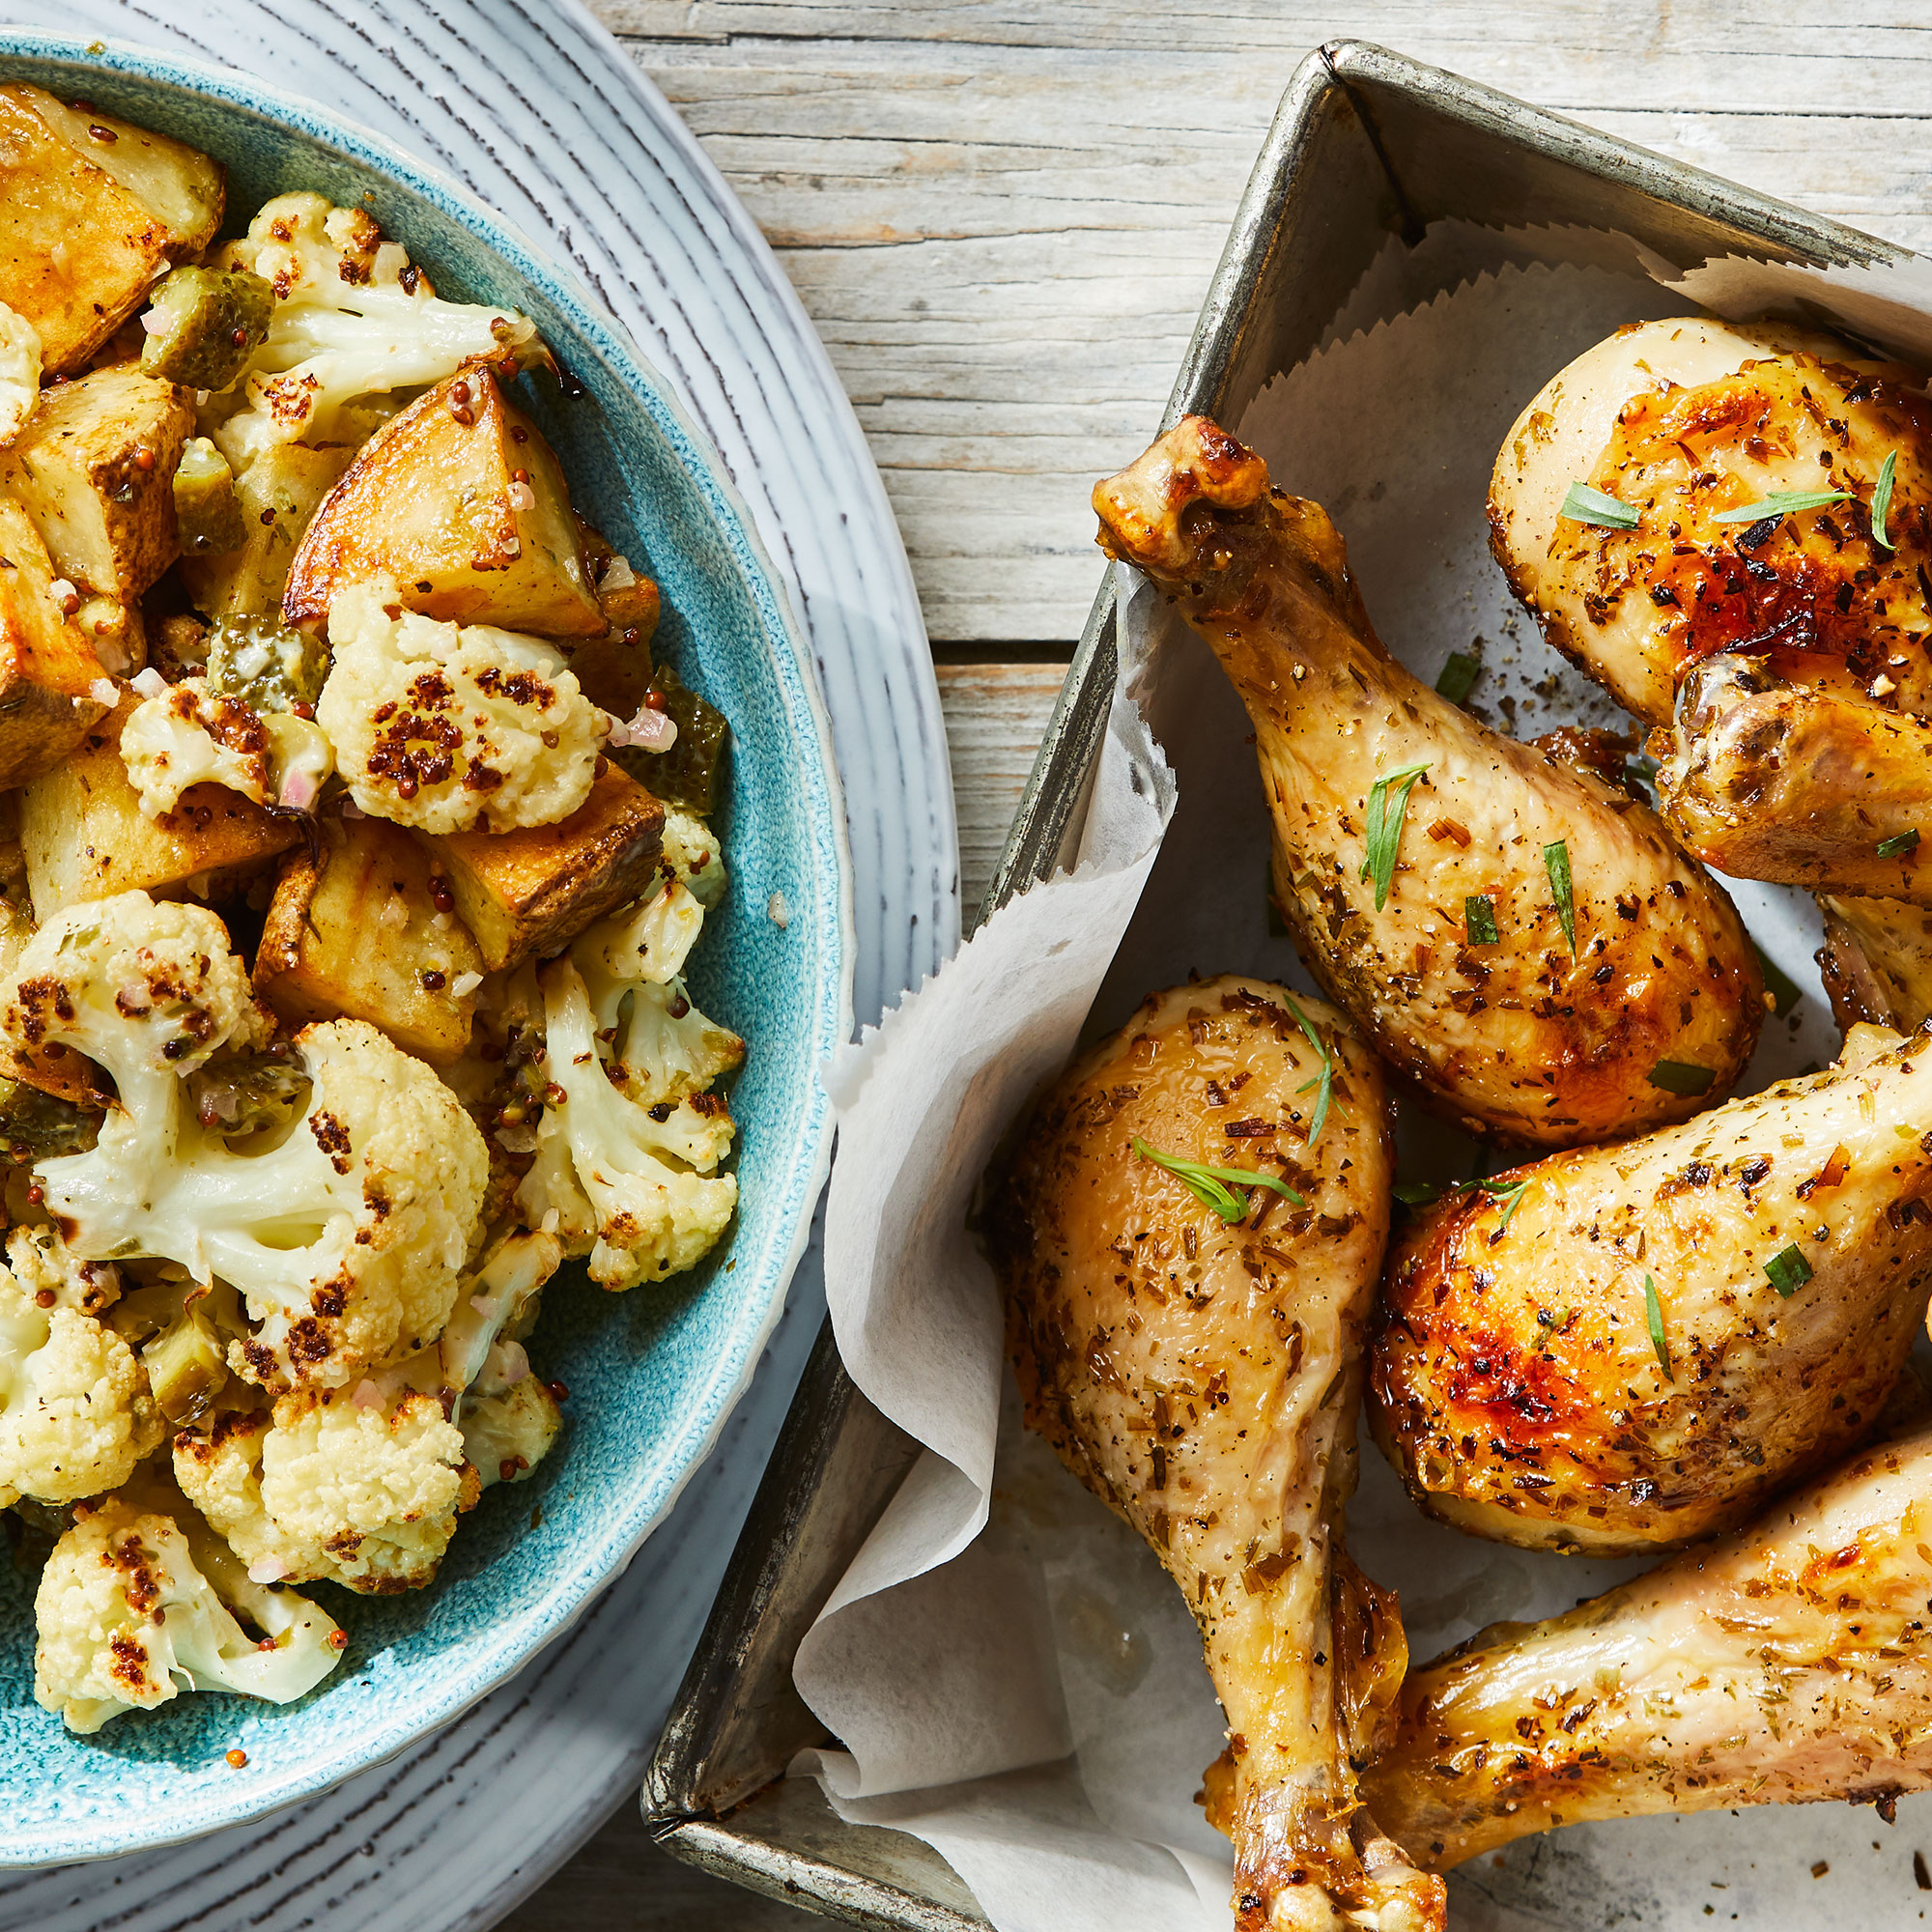 Baked Chicken Drumsticks with Roasted Cauliflower & Potato Salad